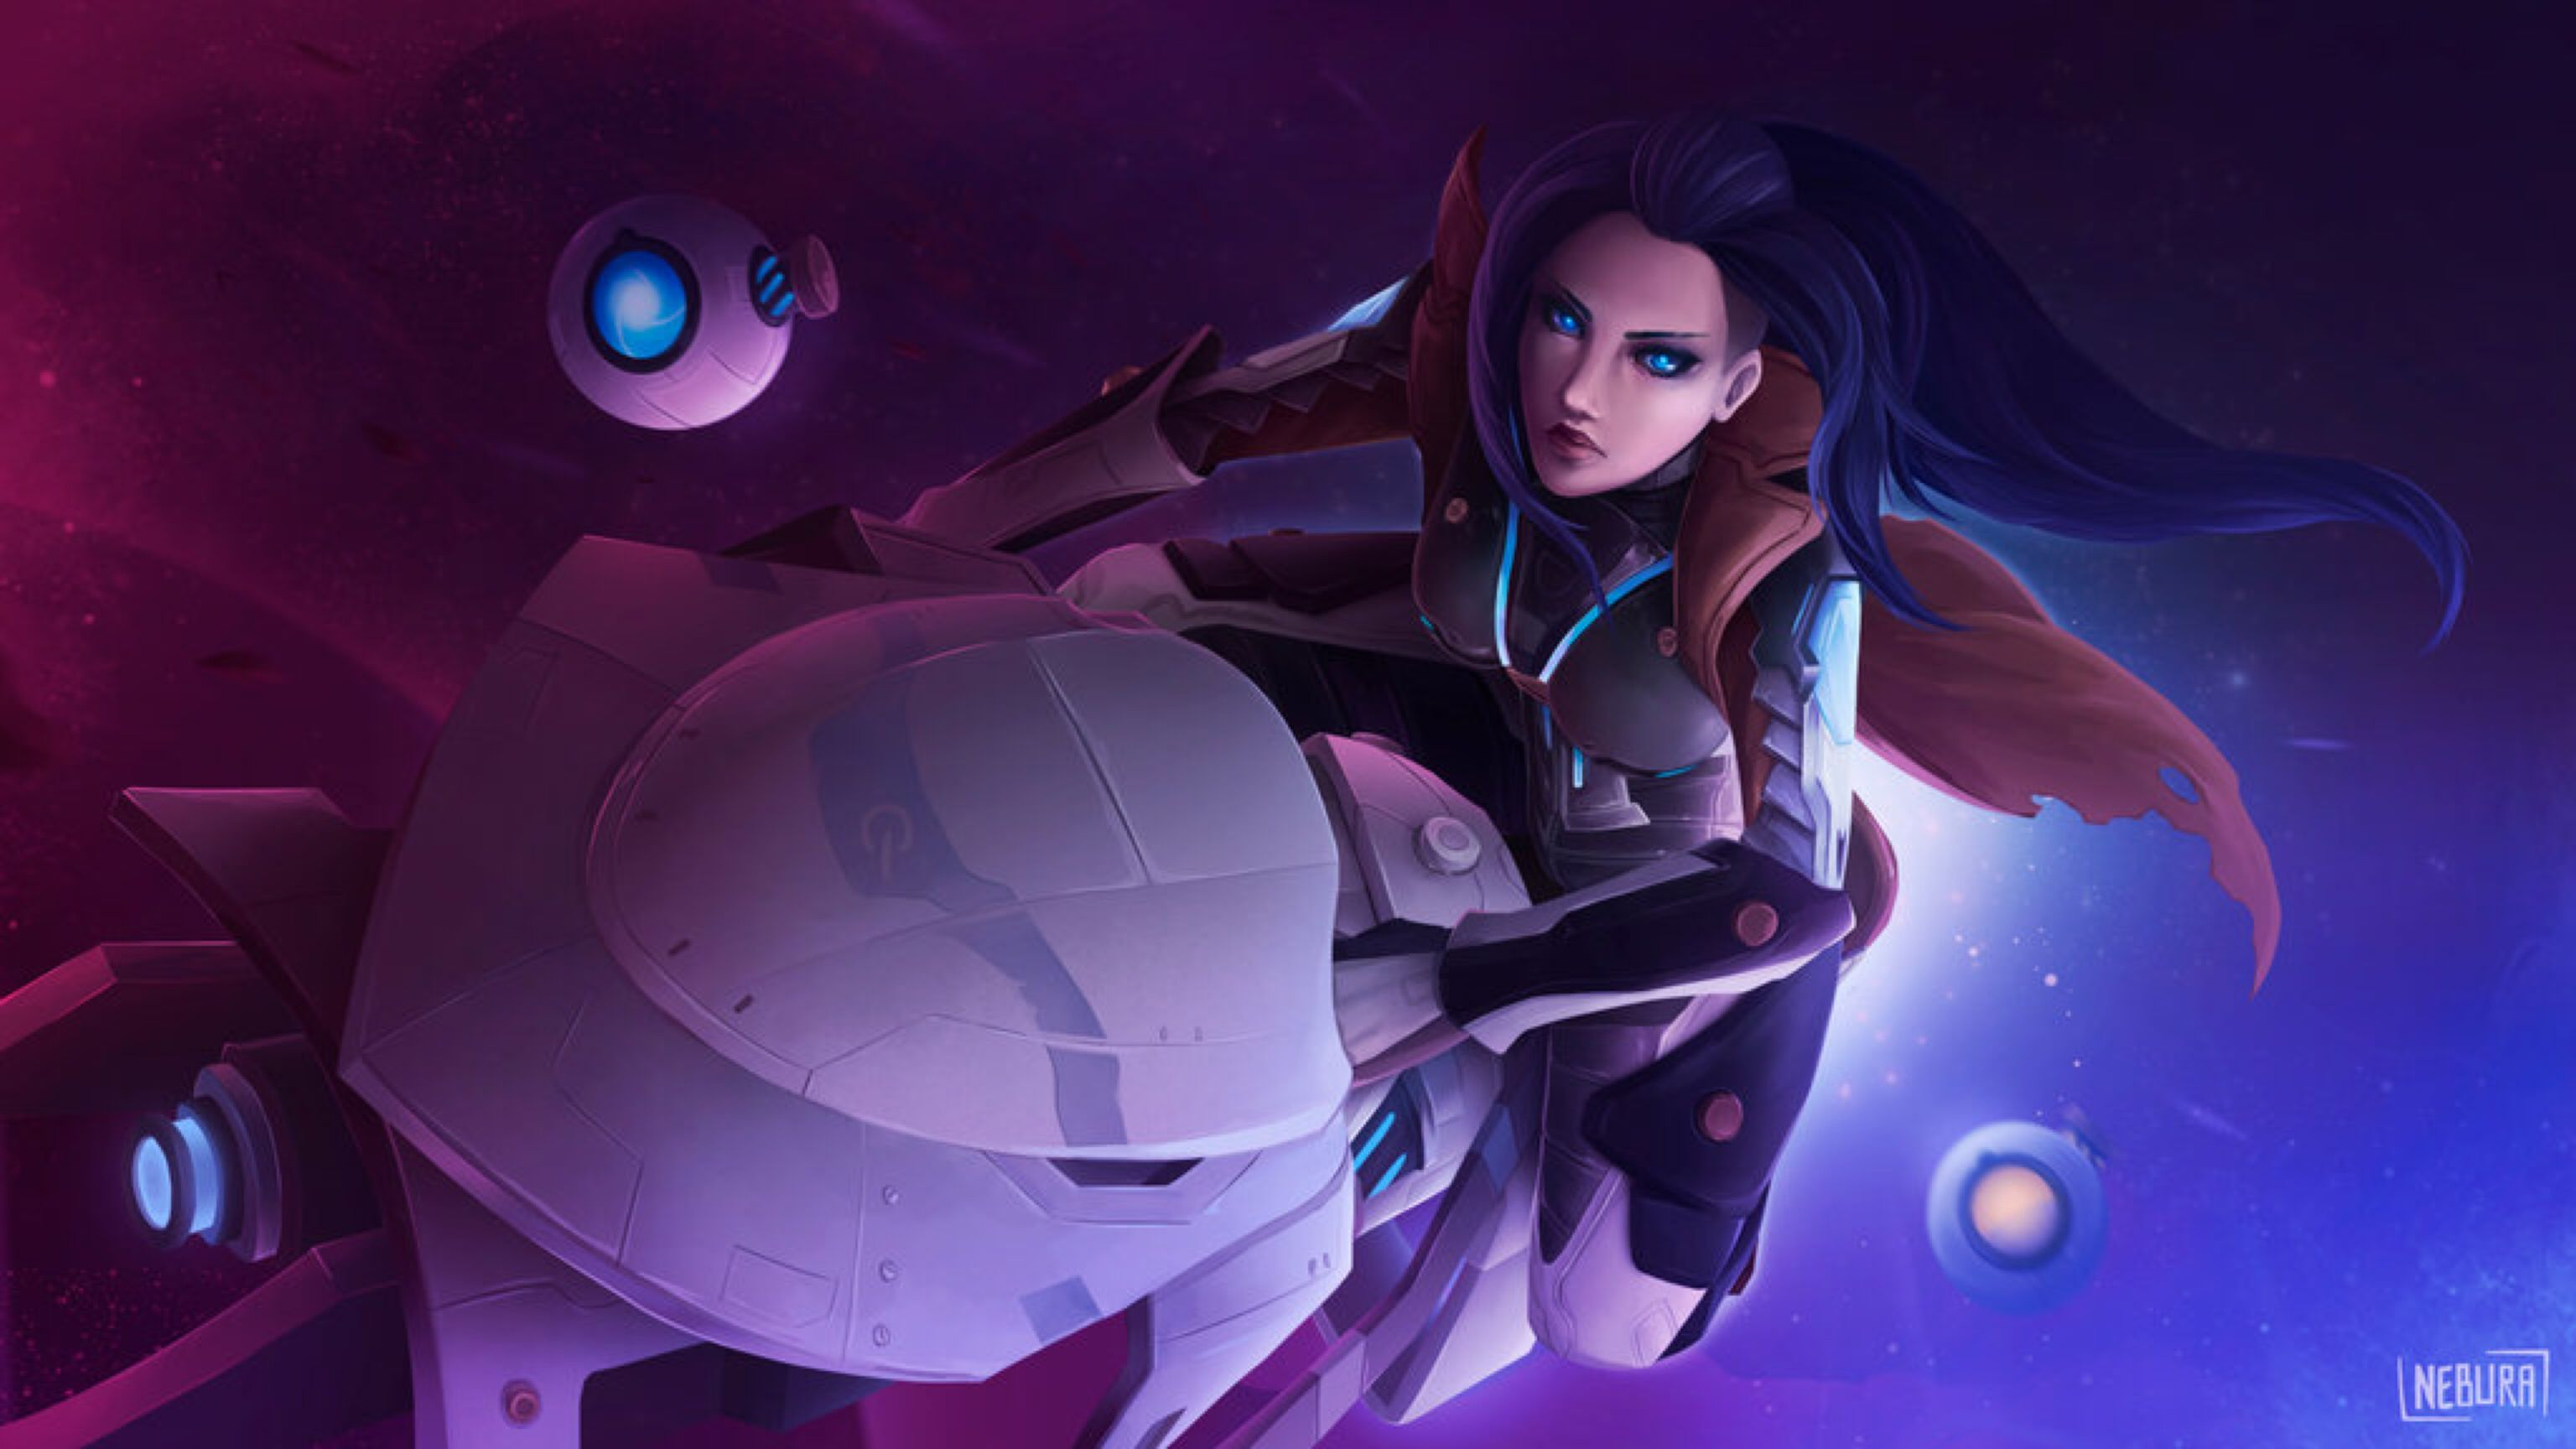 Pulsefire On The Case By The0utlander On Deviantart Lol League Of Legends League Of Legends Concept Art Characters